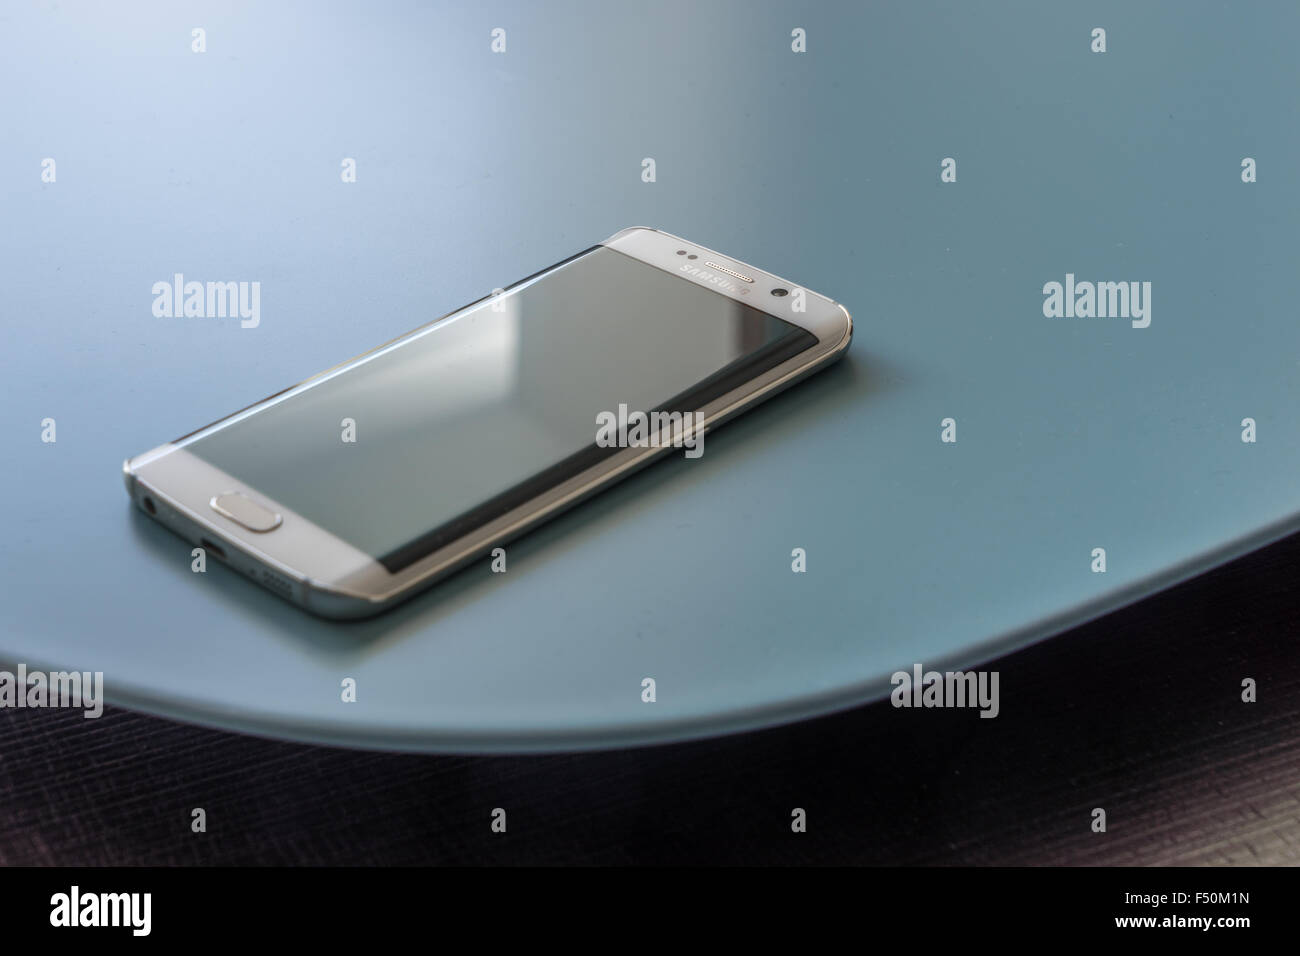 Samsung Galaxy S6 Edge smartphone laying on a table - Stock Image